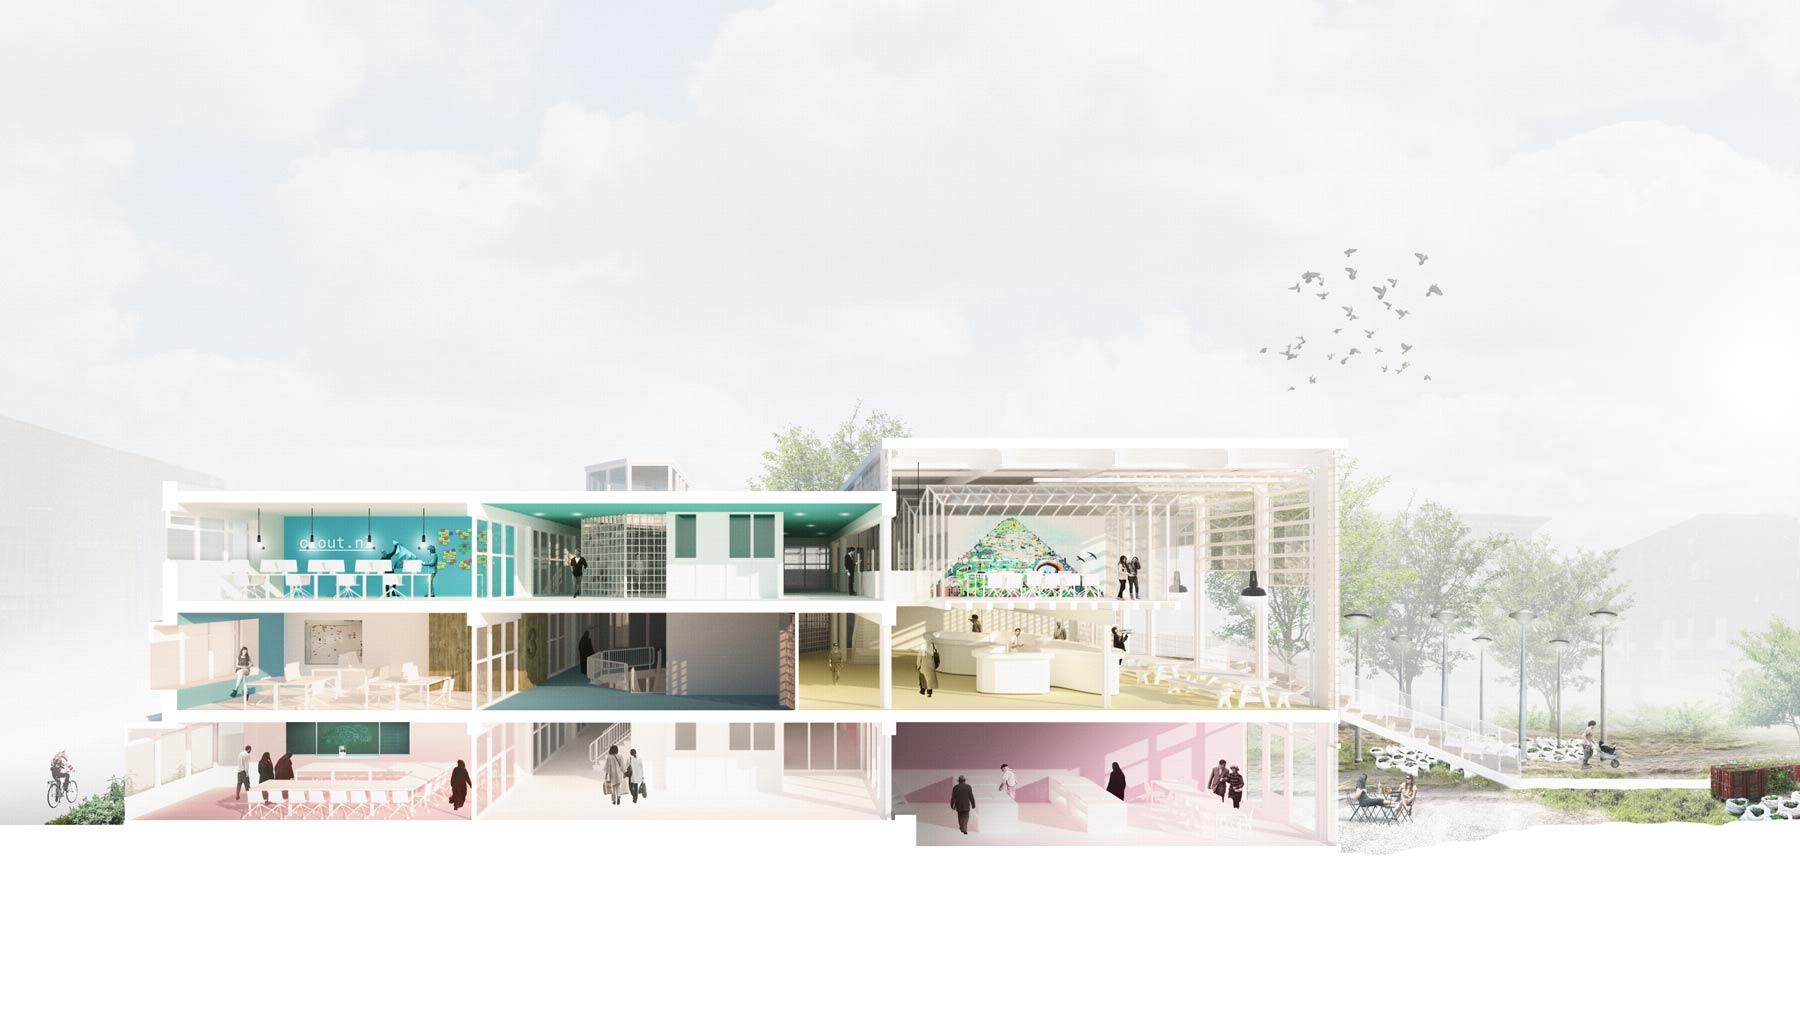 BETA office for architecture and the city Amsterdam Ru Pare Community Center impression section